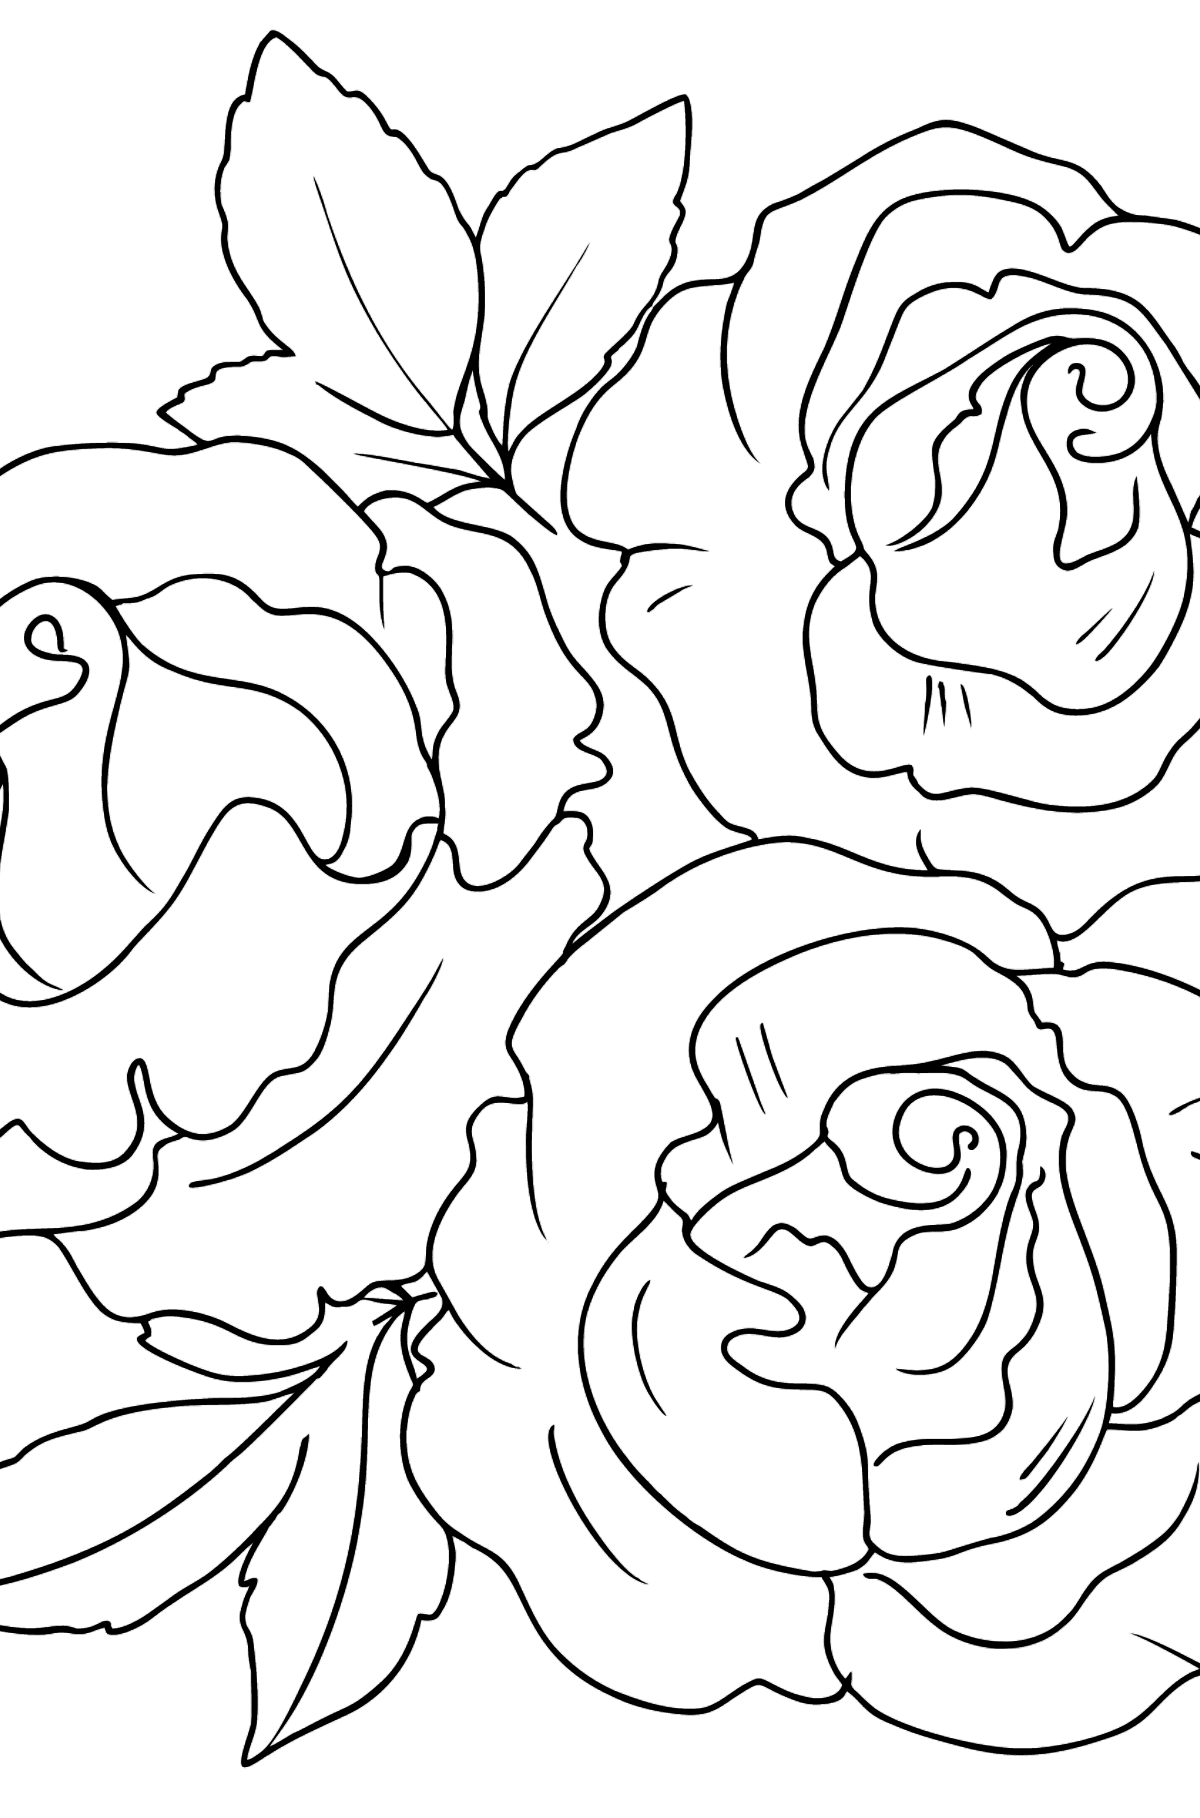 Roses Coloring Page - Coloring Pages for Kids